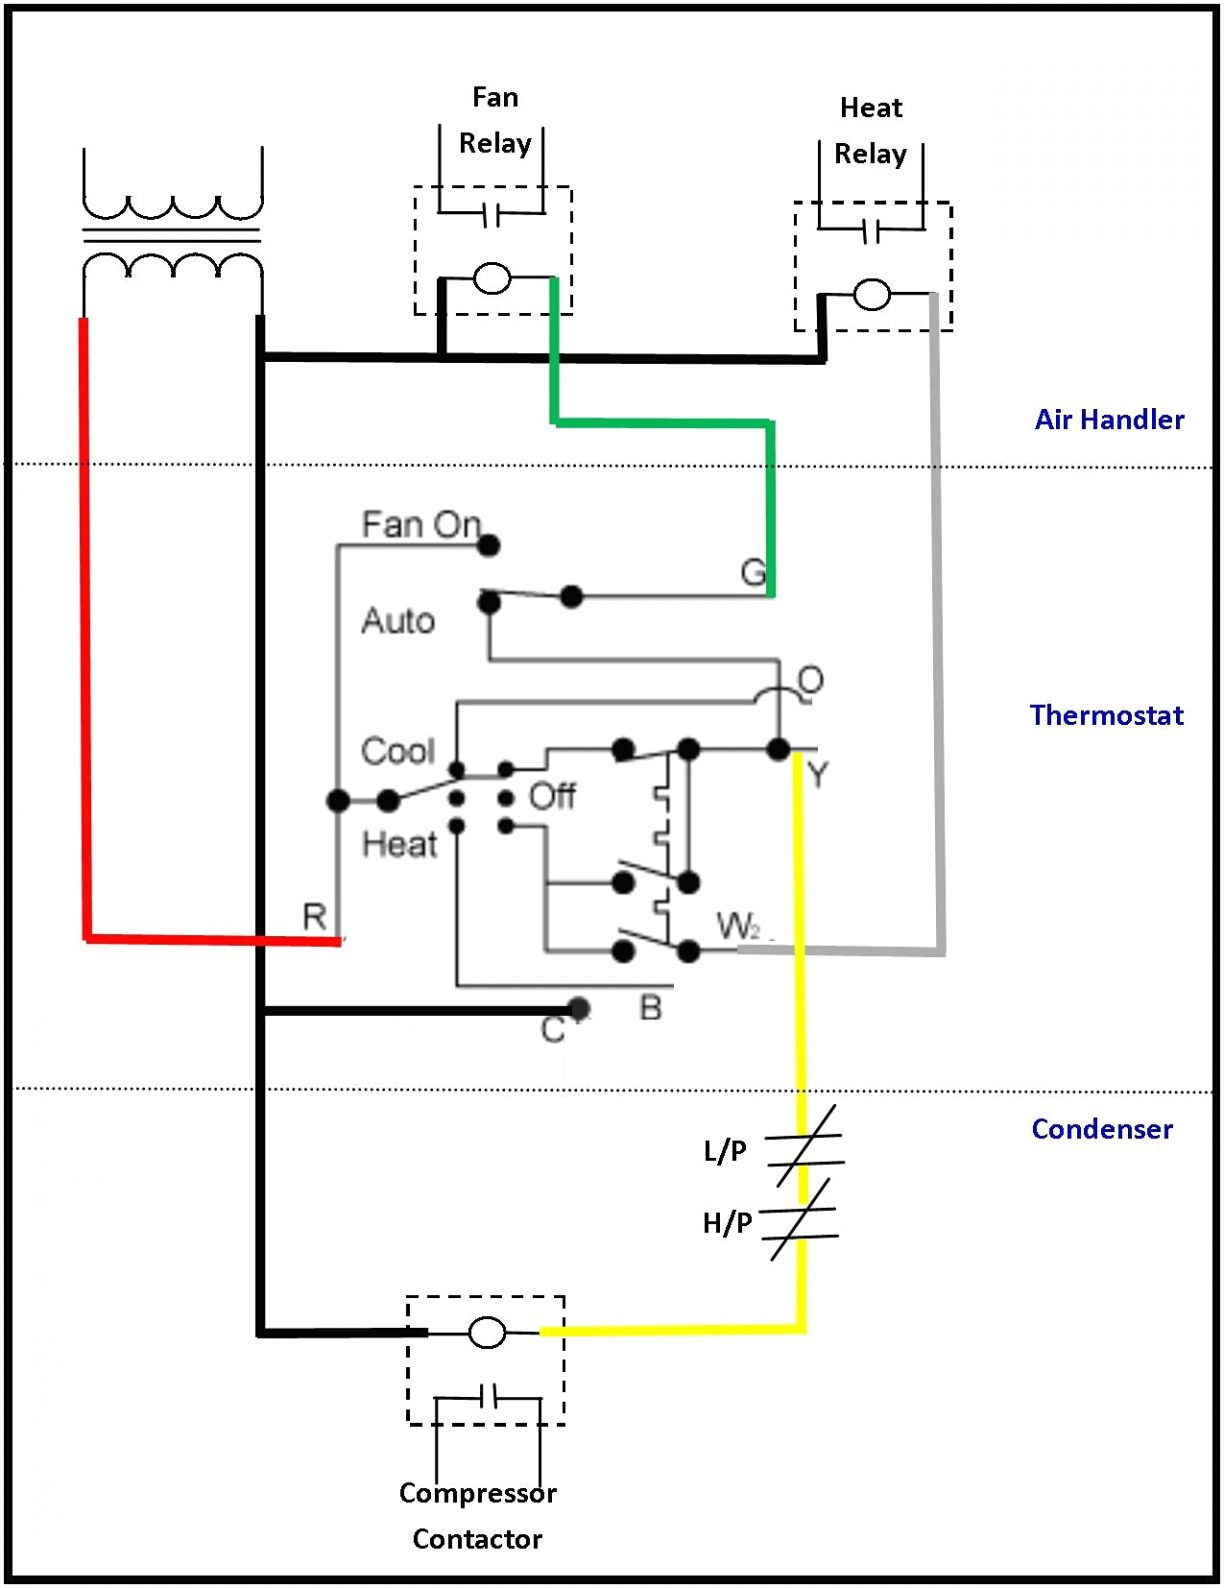 [QMVU_8575]  DIAGRAM] Dgaa077bdta Evcon Wiring Diagram FULL Version HD Quality Wiring  Diagram - DIMARZIOWIRING.LEXANESIRAC.FR | Dgaa077bdta Evcon Wiring Diagram |  | dimarziowiring.lexanesirac.fr